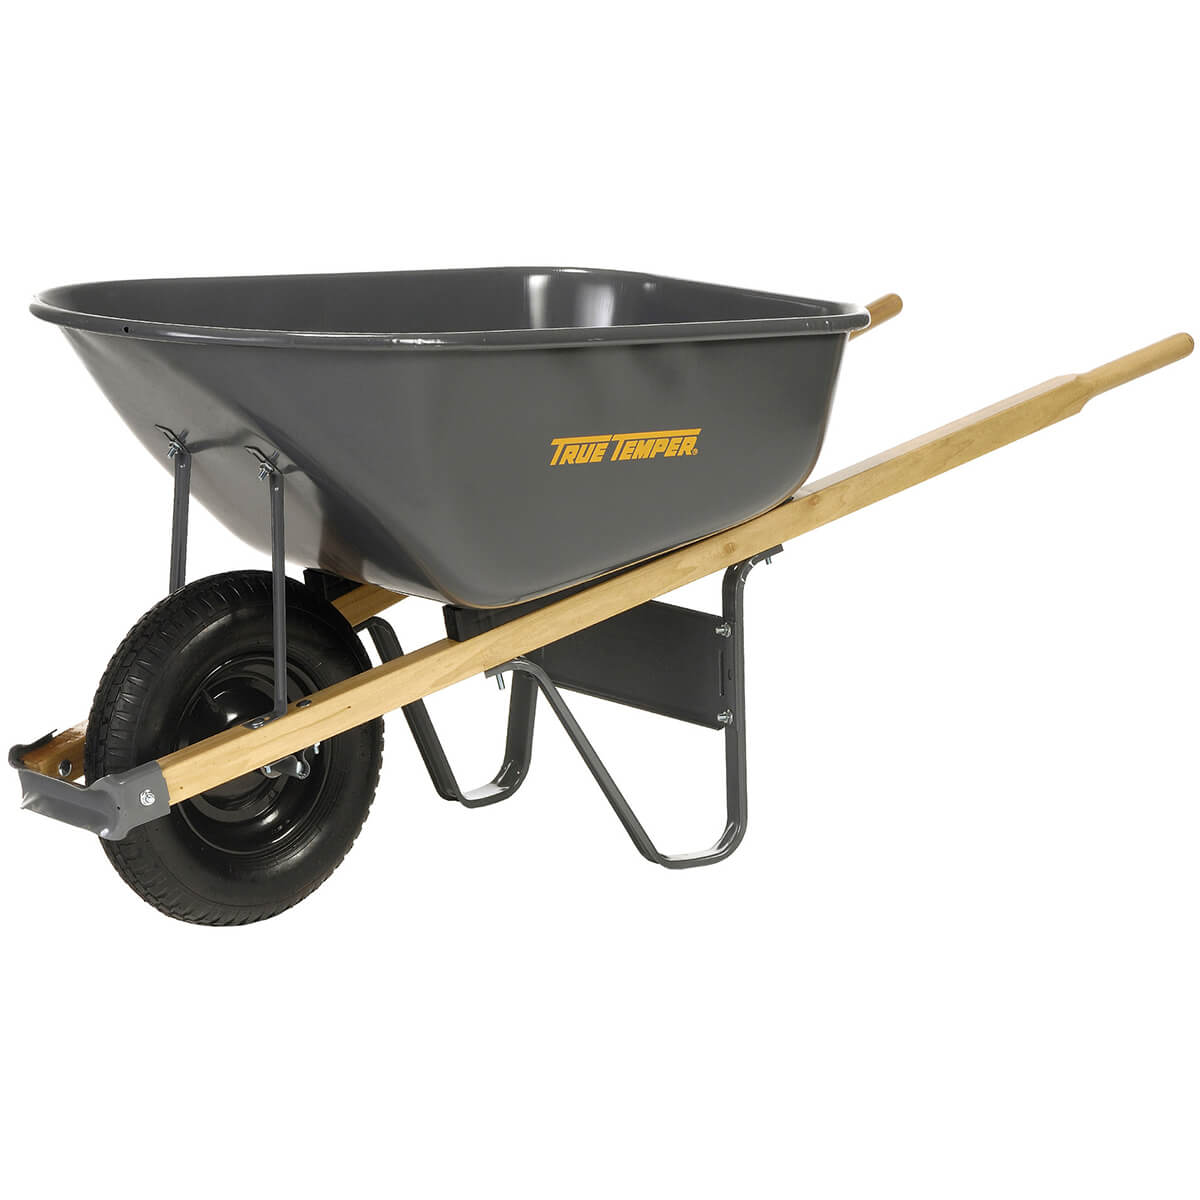 Garant Wheelbarrow steel tray 6 cu. ft.